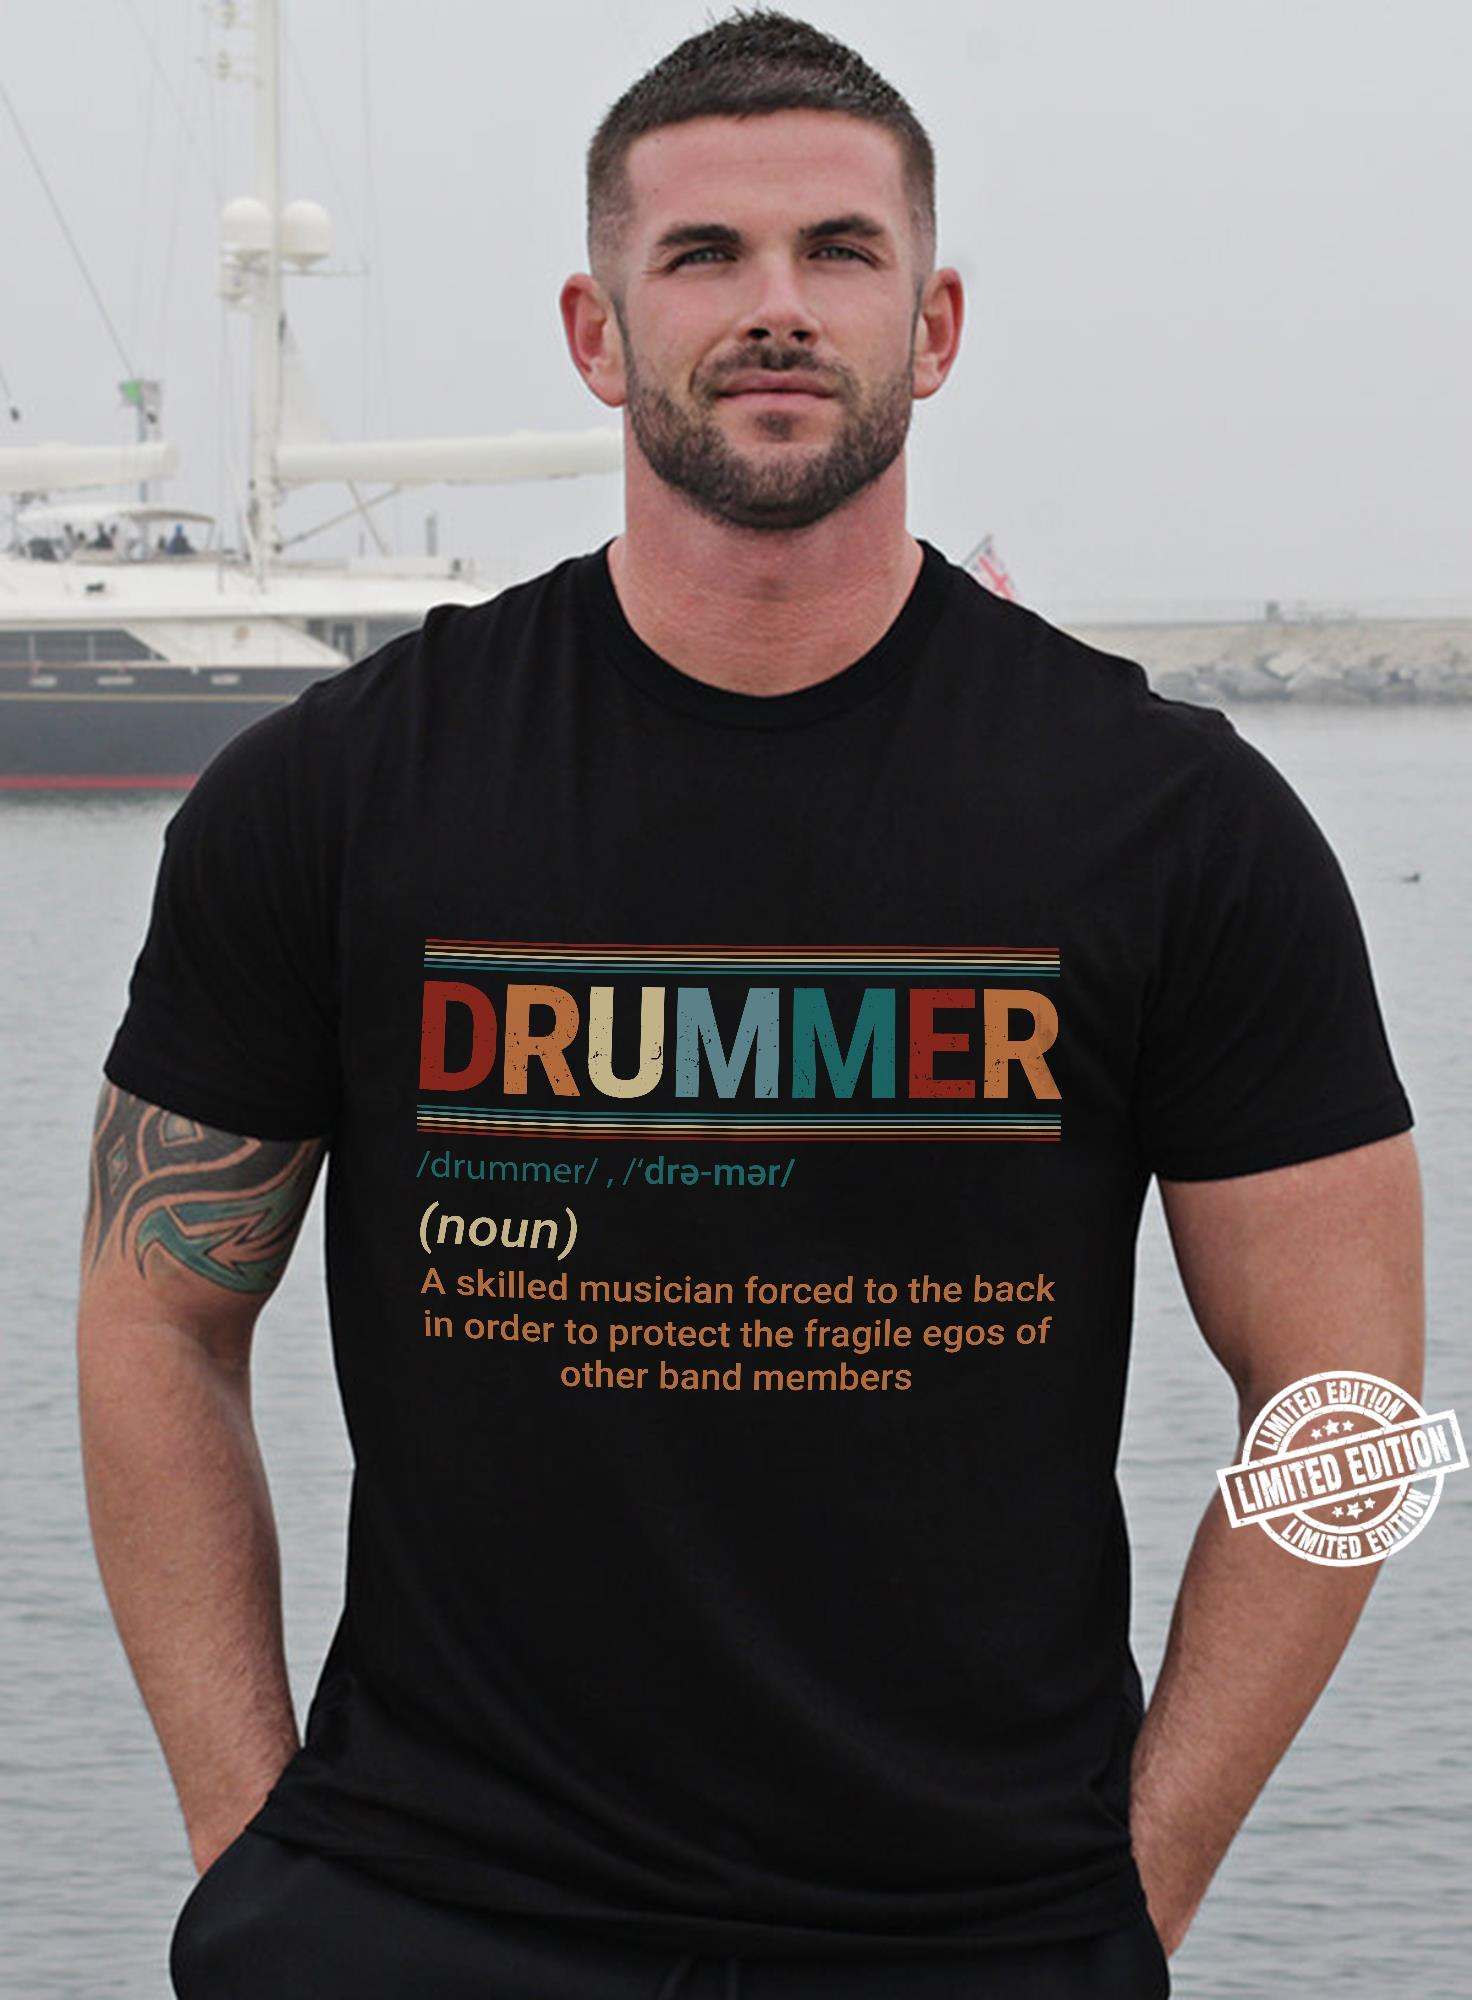 Drummer a skilled musician forced to the back in order to protect shirt